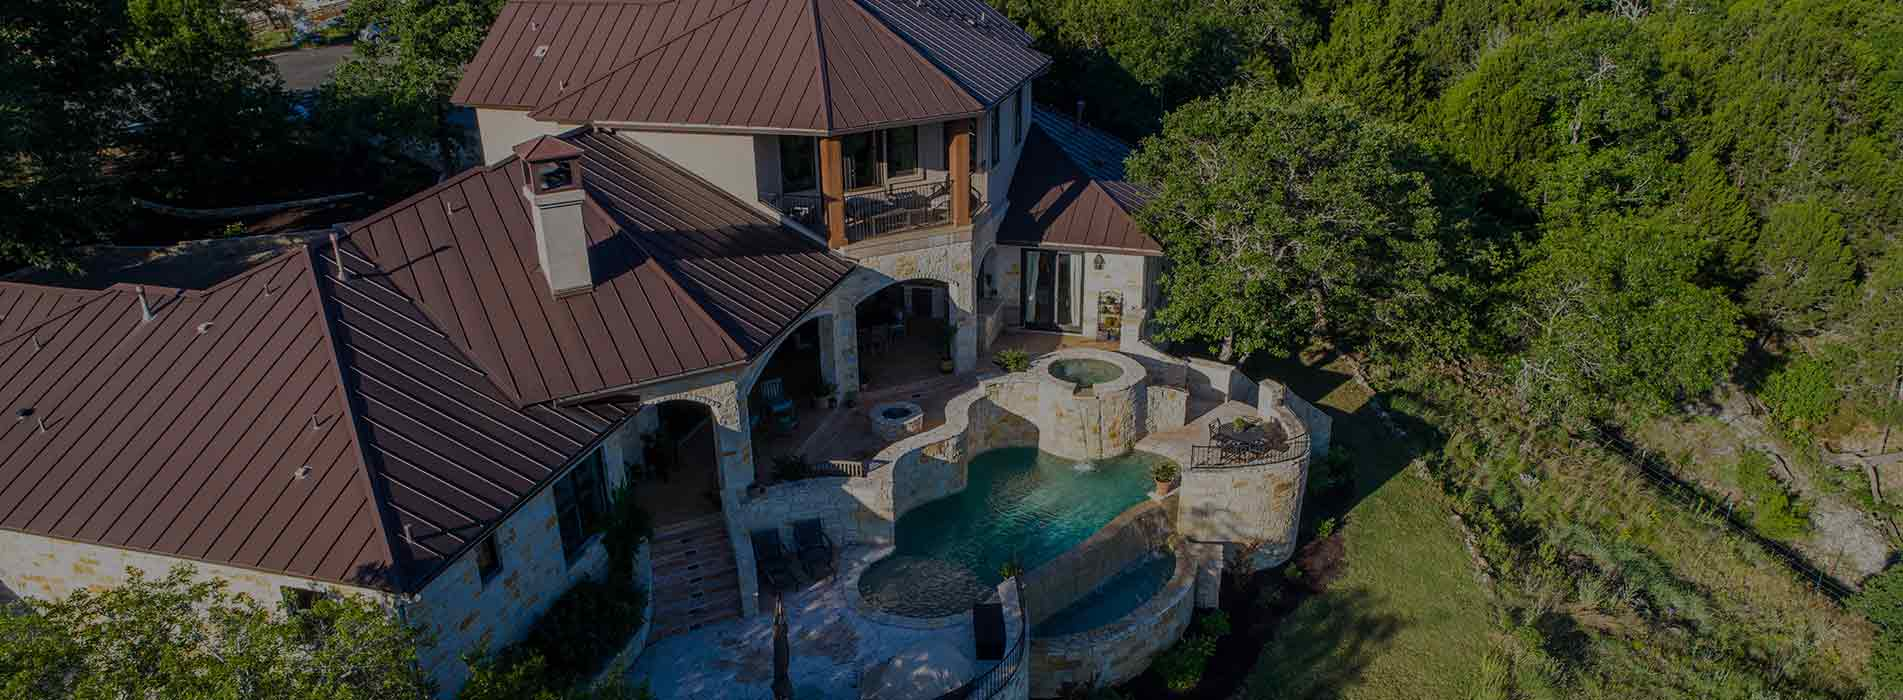 mansion with pool